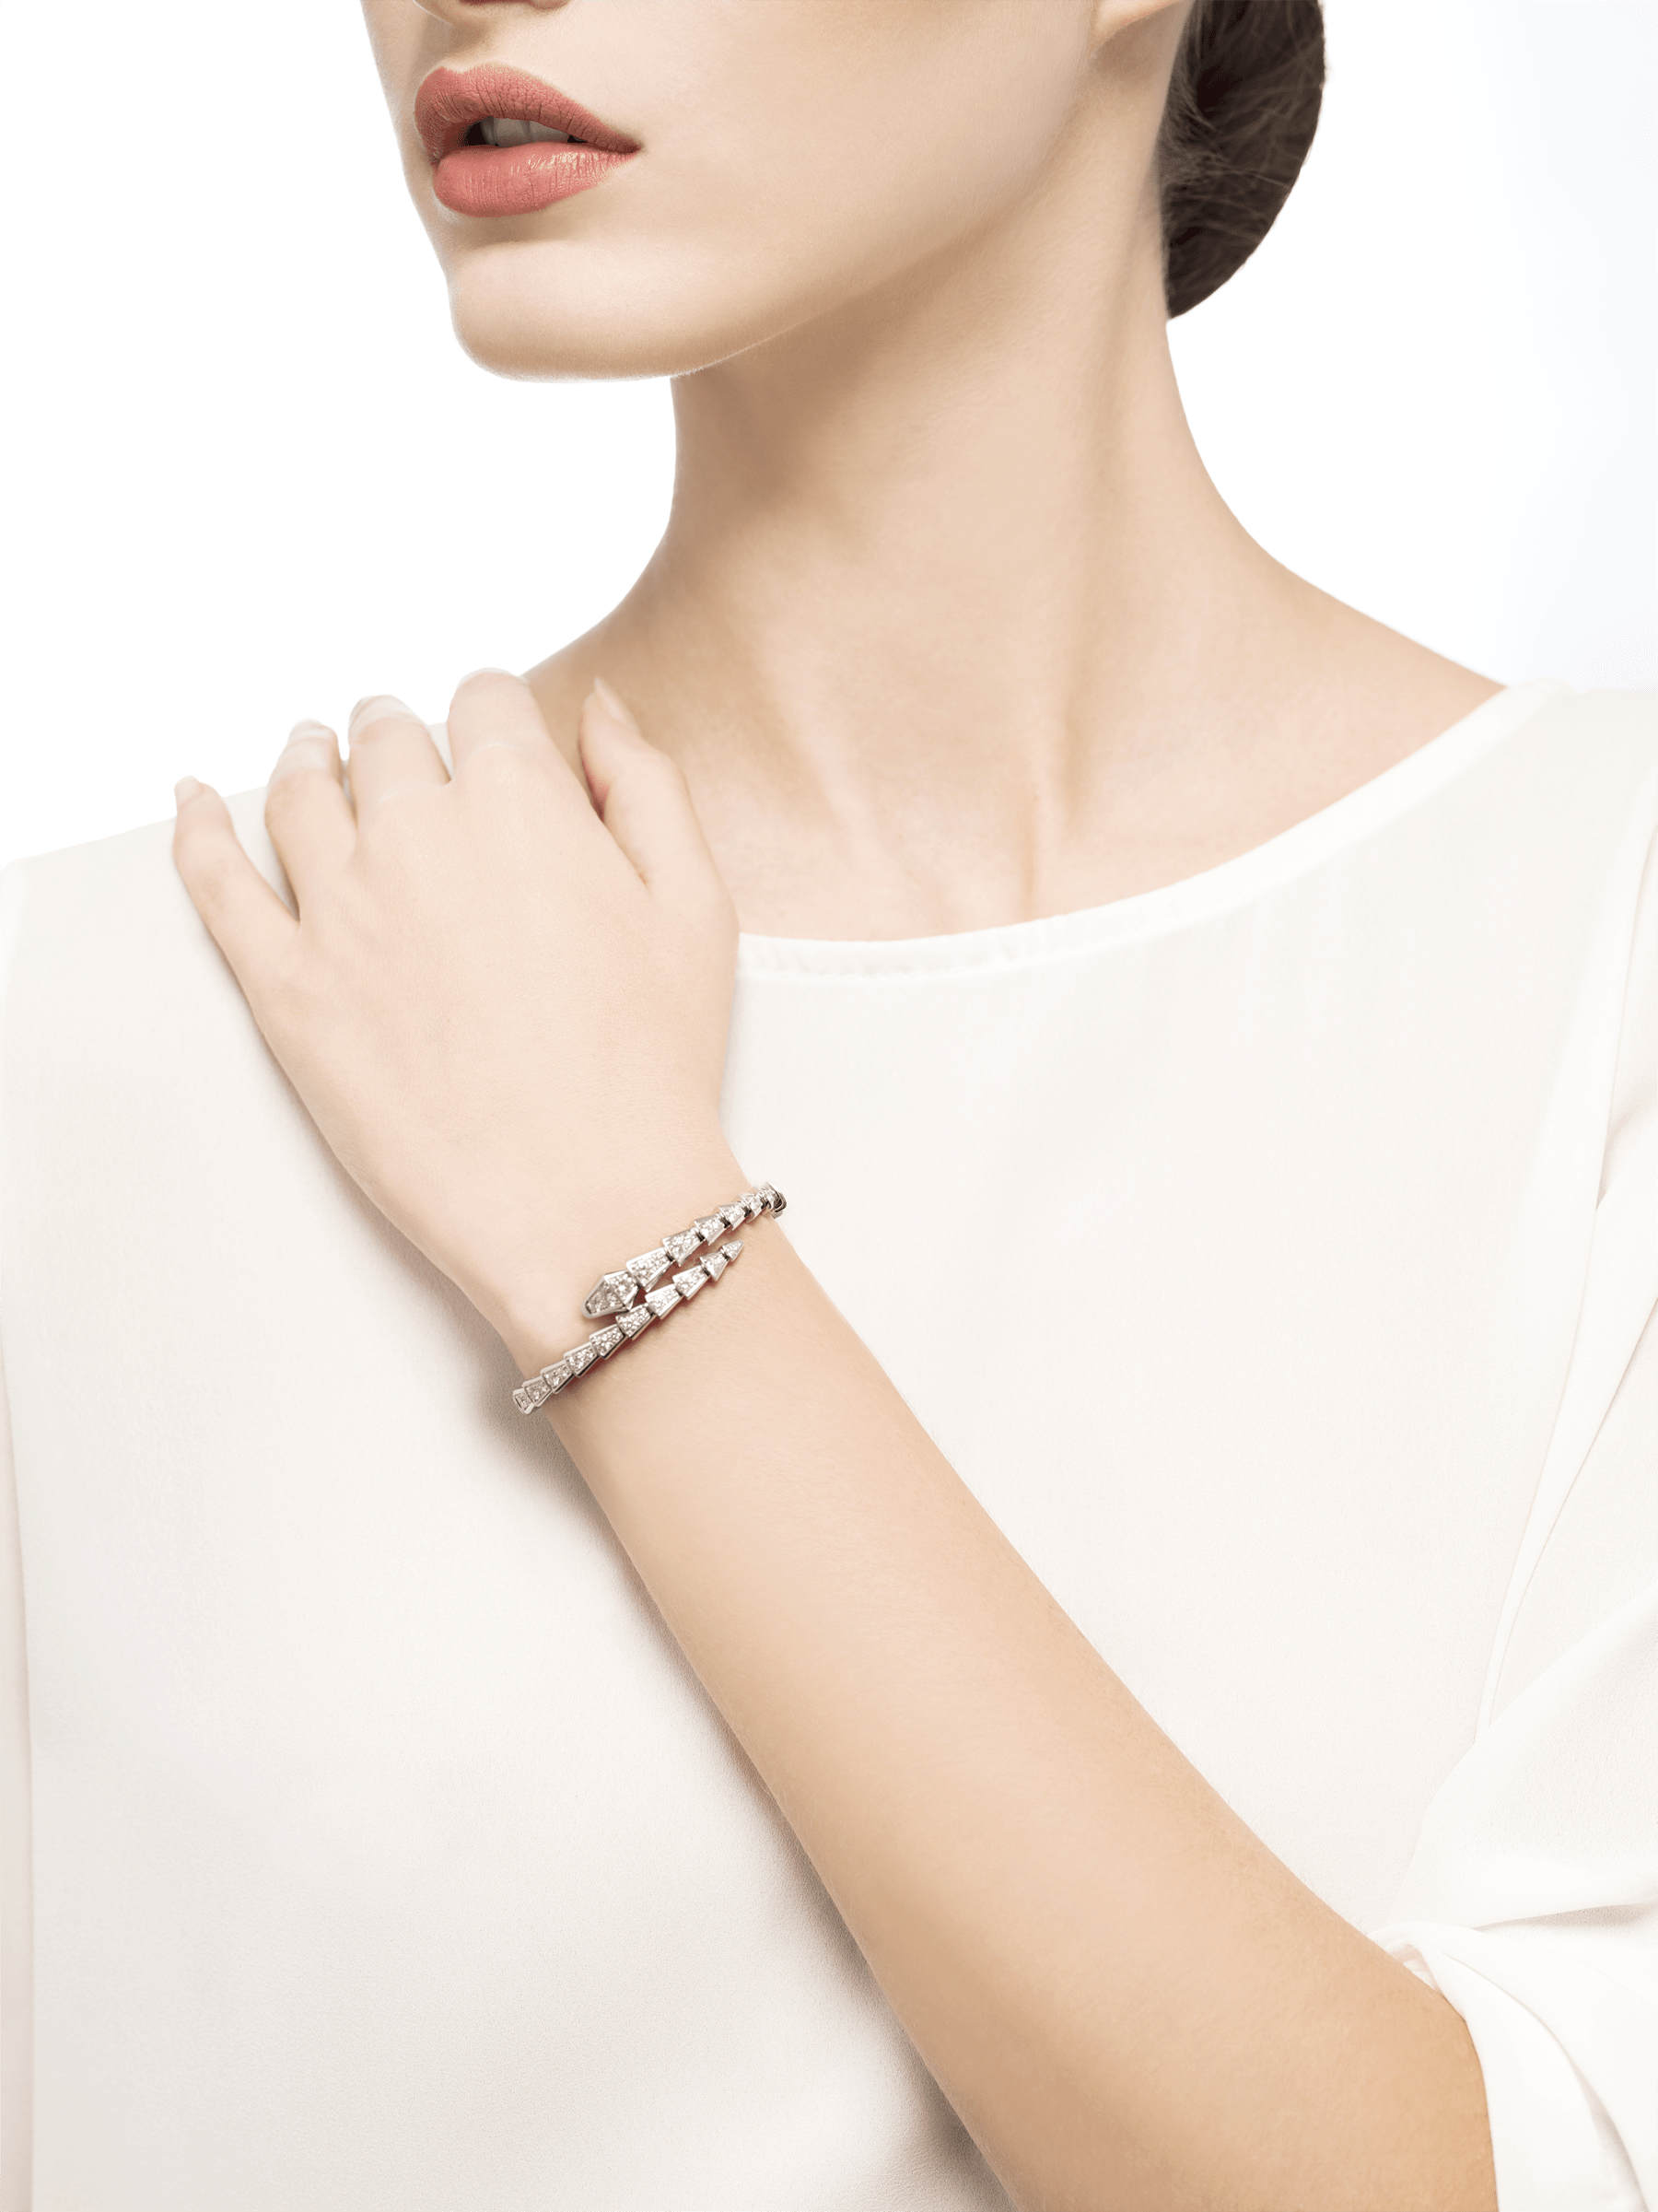 Serpenti one-coil slim bracelet in 18 kt white gold, set with full pavé diamonds. BR857492 image 3